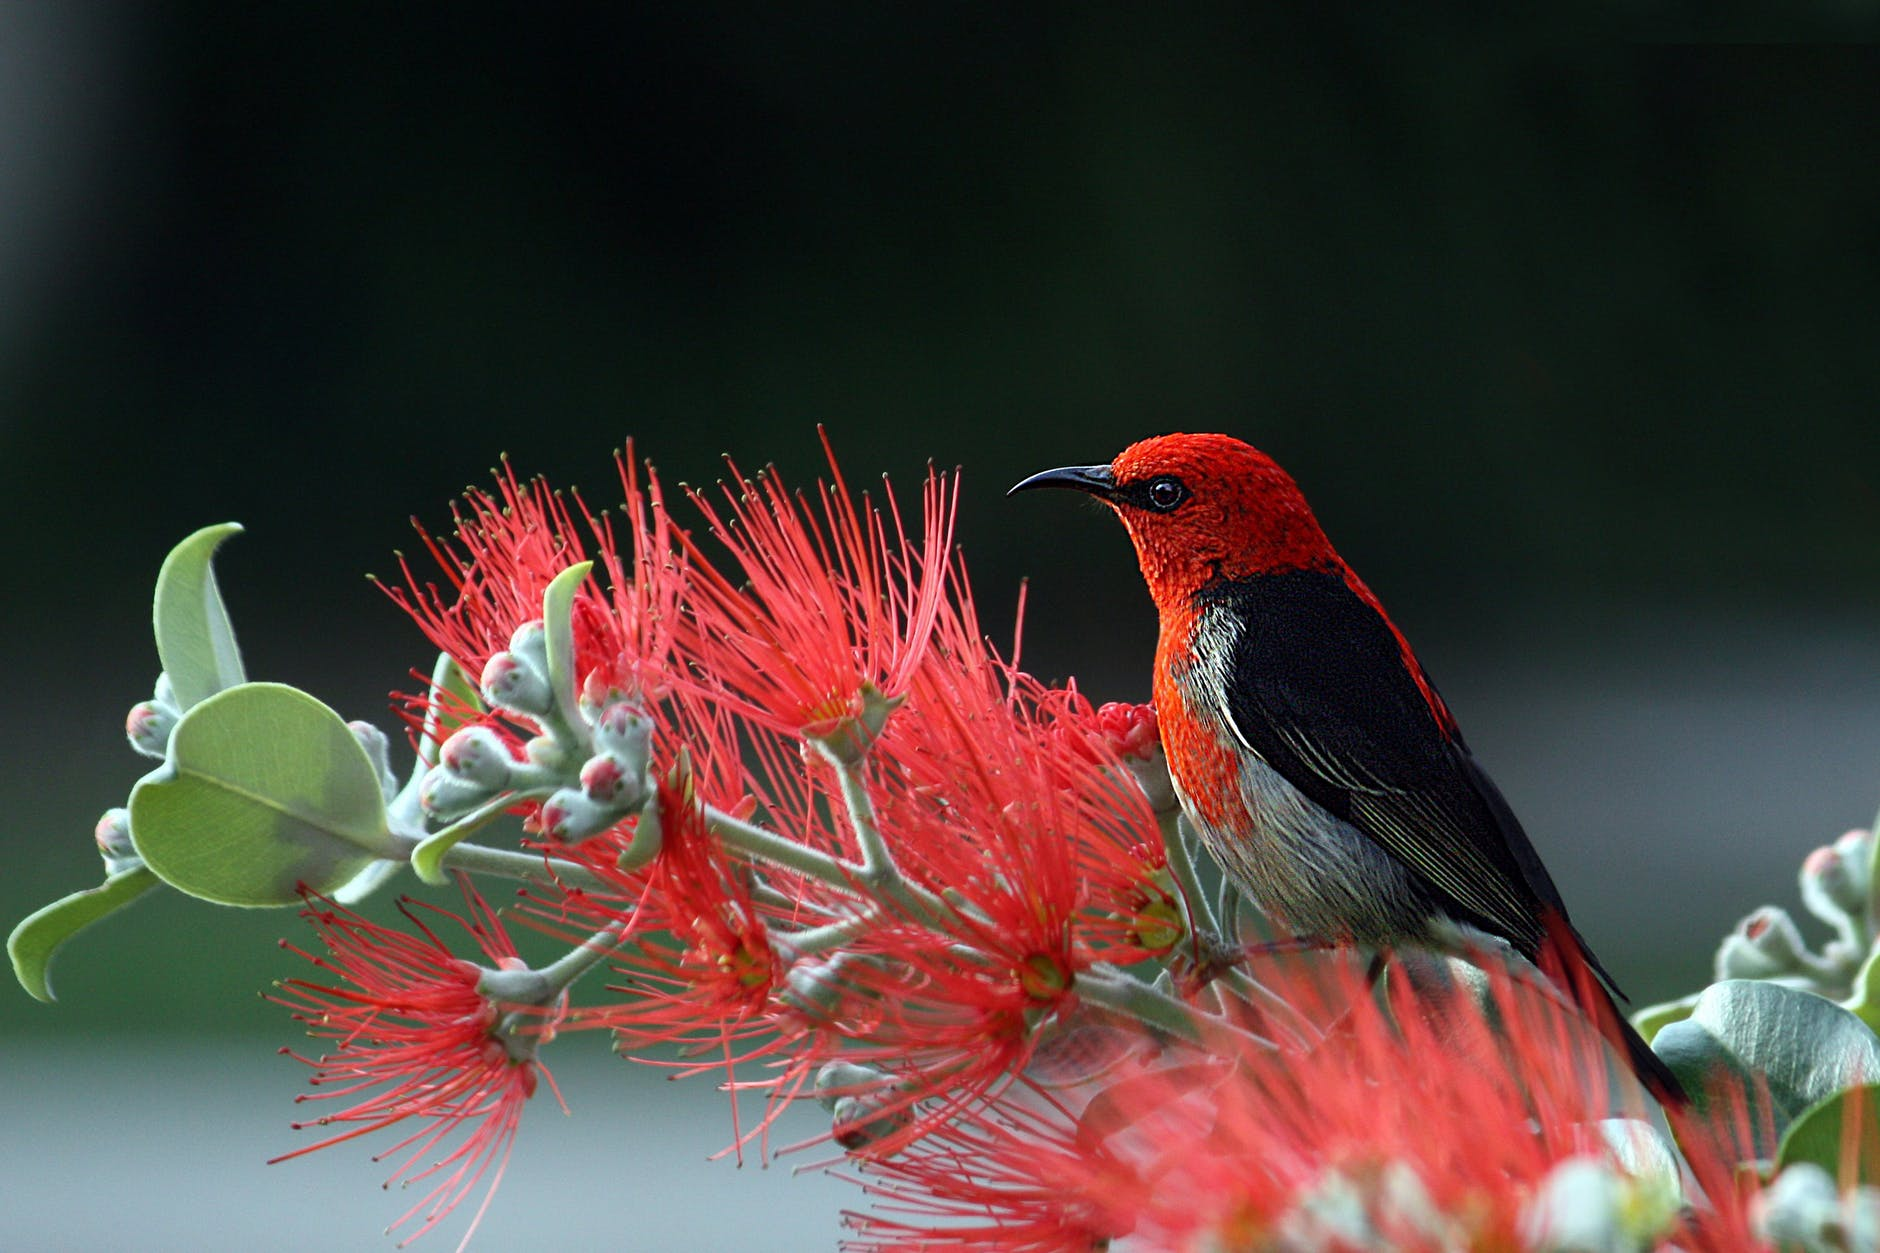 red and black bird on red flowers